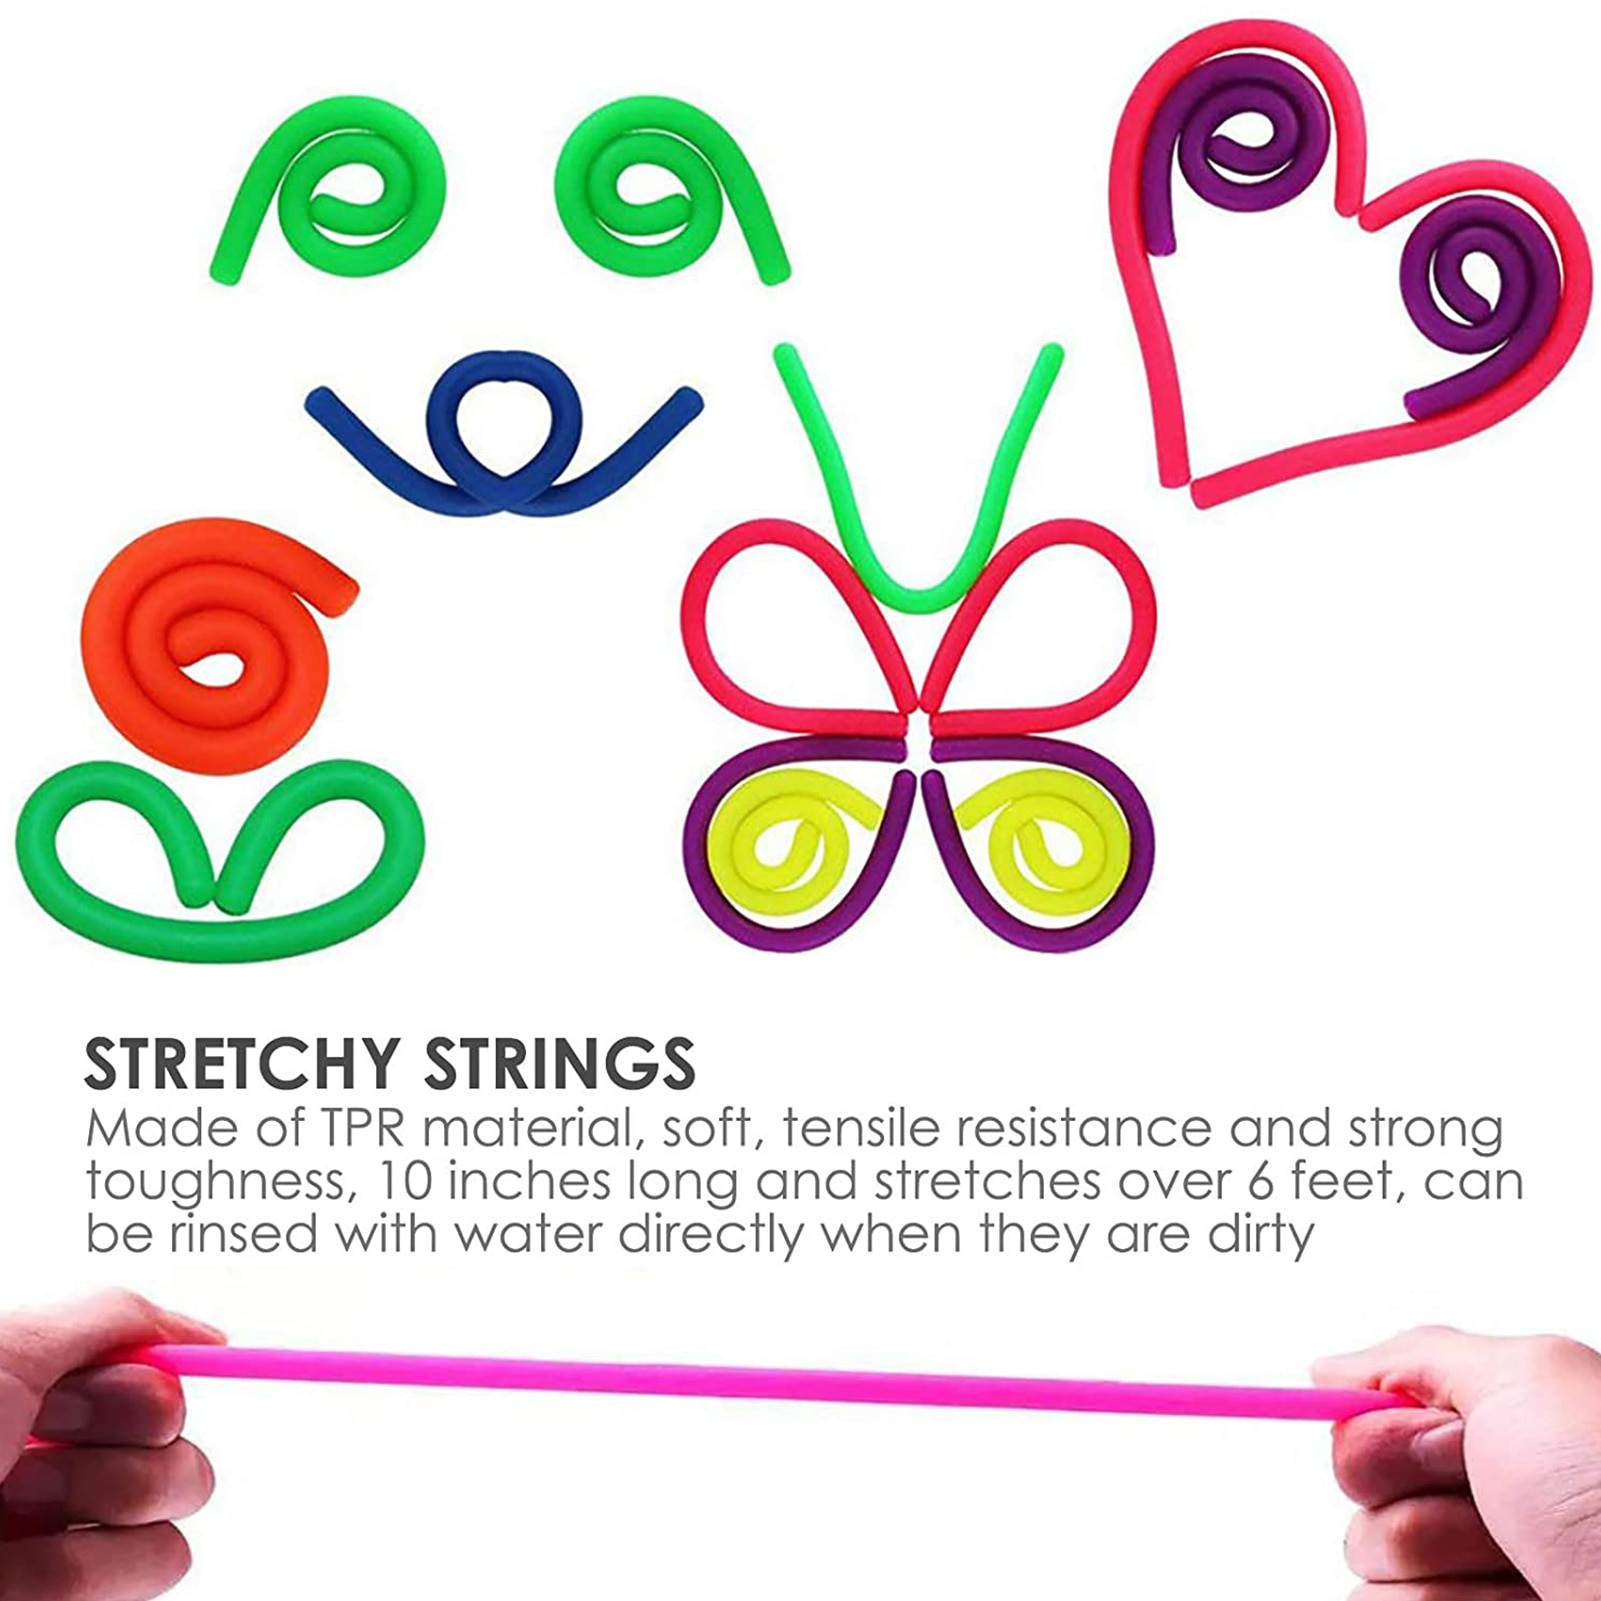 Fidget Sensory Toy Set Sensory Toy Set Stress Relief Toy For Children Adults With Simple Dimple Fidget Toy Anti-stress Toys enlarge